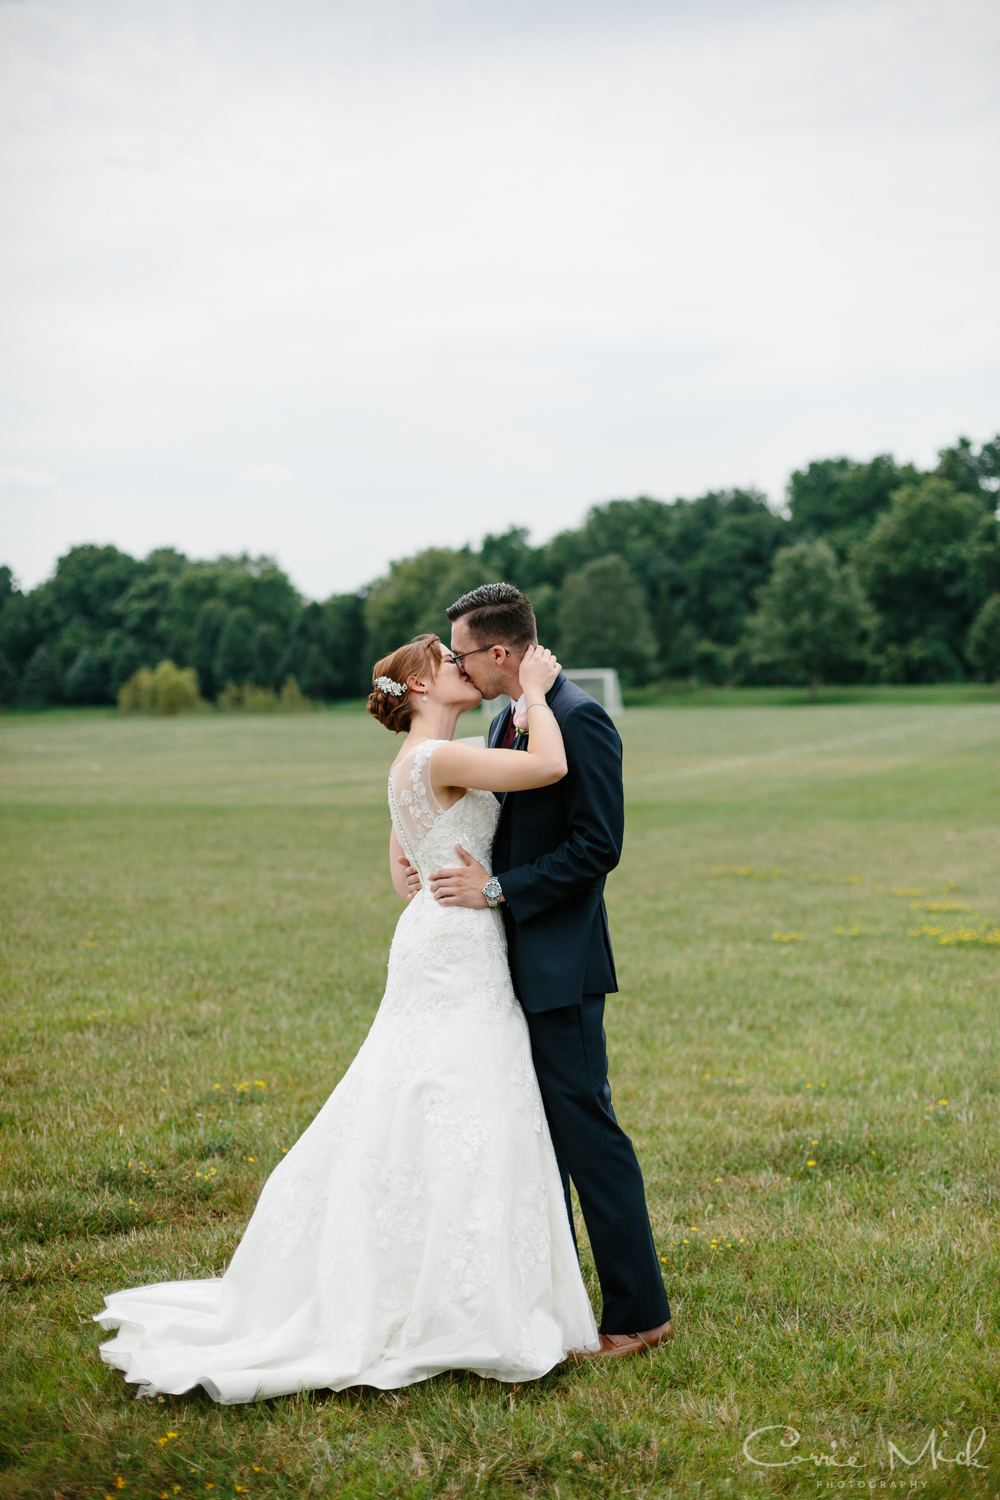 Elegant, Top of the Market Ohio Wedding - Corrie Mick Photography - Portland, Oregon Photographer-59.jpg